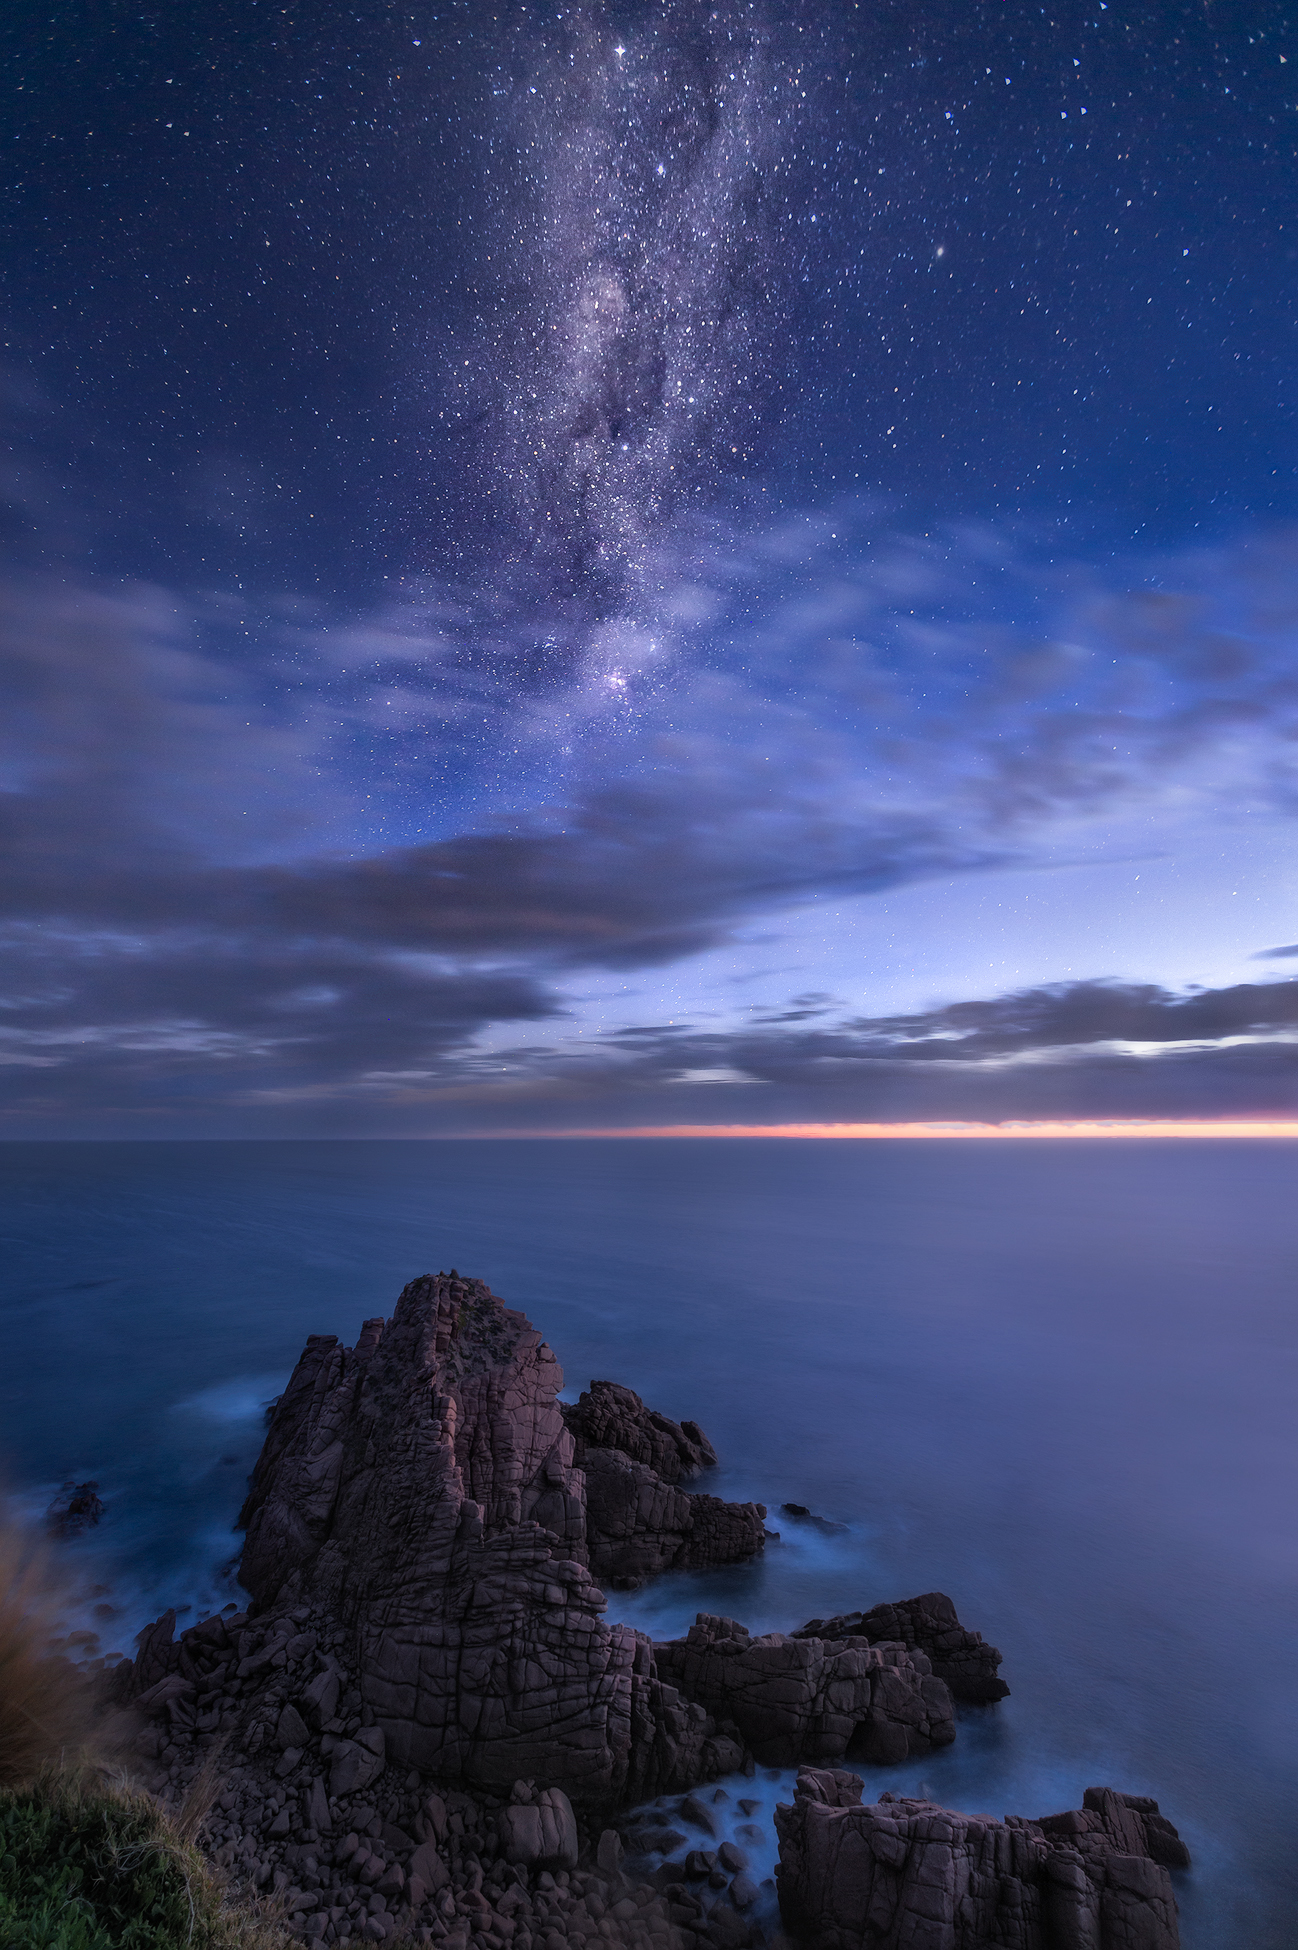 Night Sky Stargazing at The Pinnacles, Phillip Island | We Are Raw Photography lessons